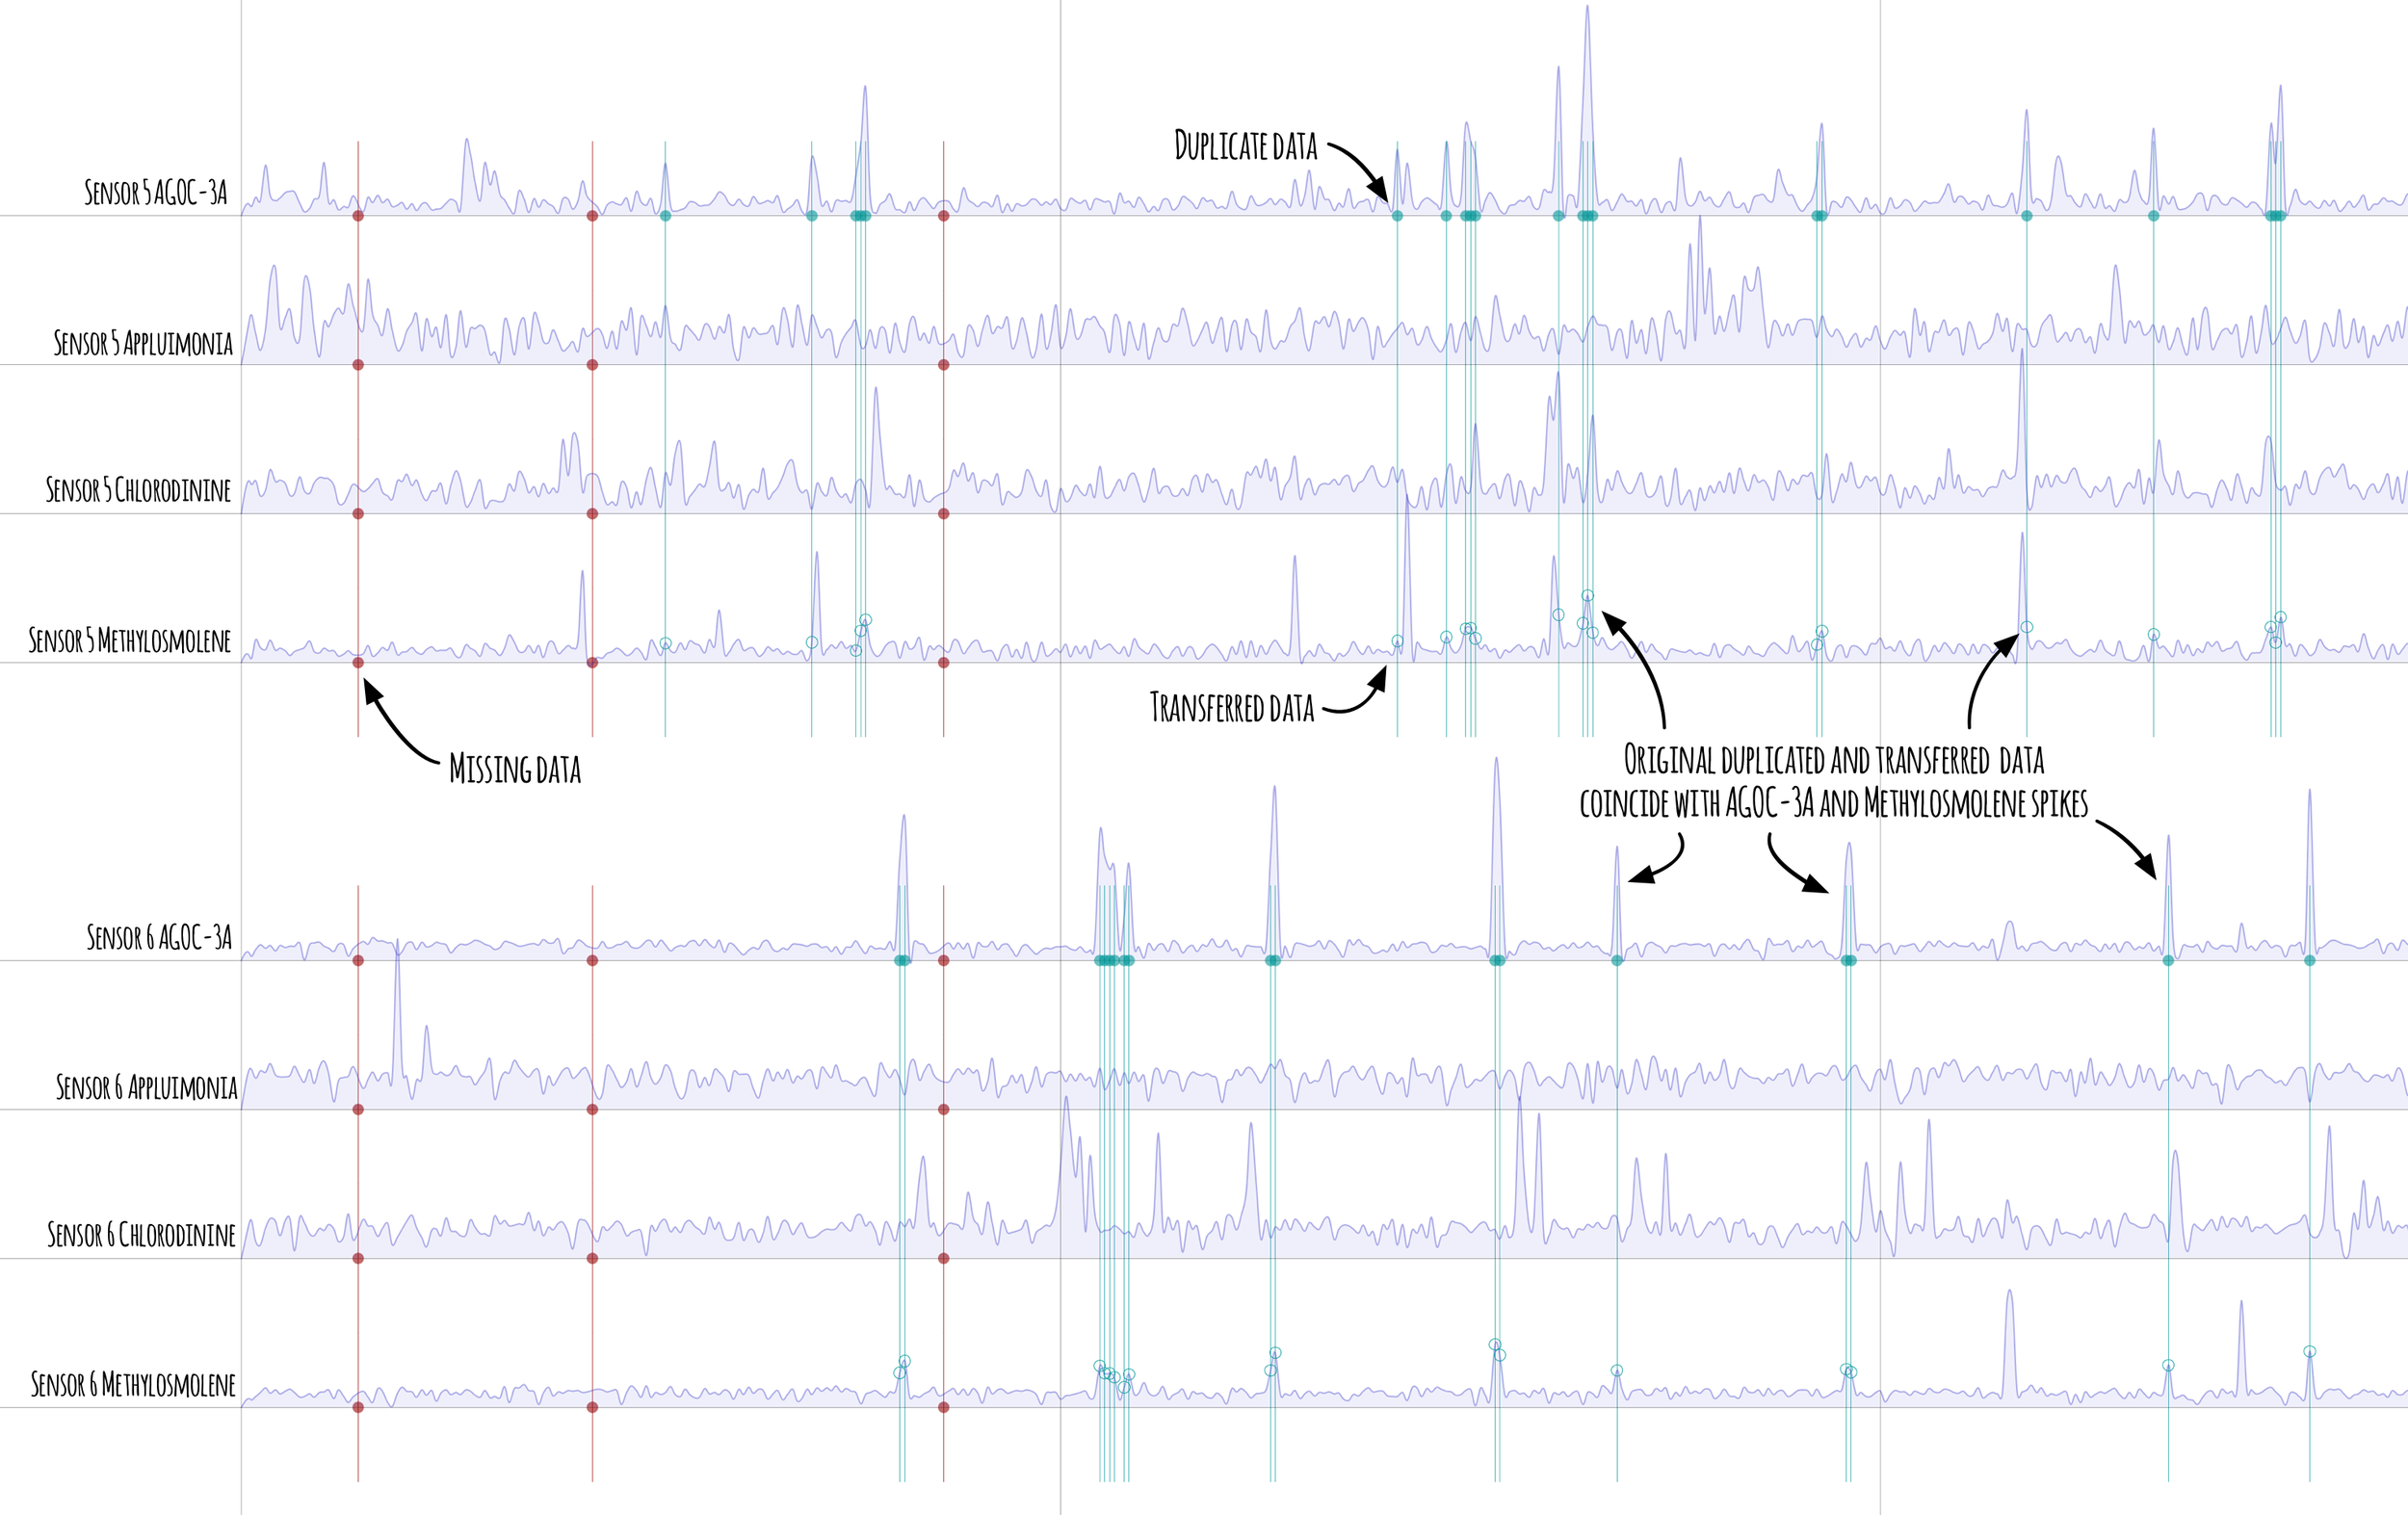 Figure 8  -Zoomed in portion of sensors 5 and 6 readings showing transfer of duplicate readings from ACOC-3A to Methylosmolene (original duplicates shown as solid green disks, transferred values green circles). Spikes remain at these points in both AGOC-3A and Methylosmolene.